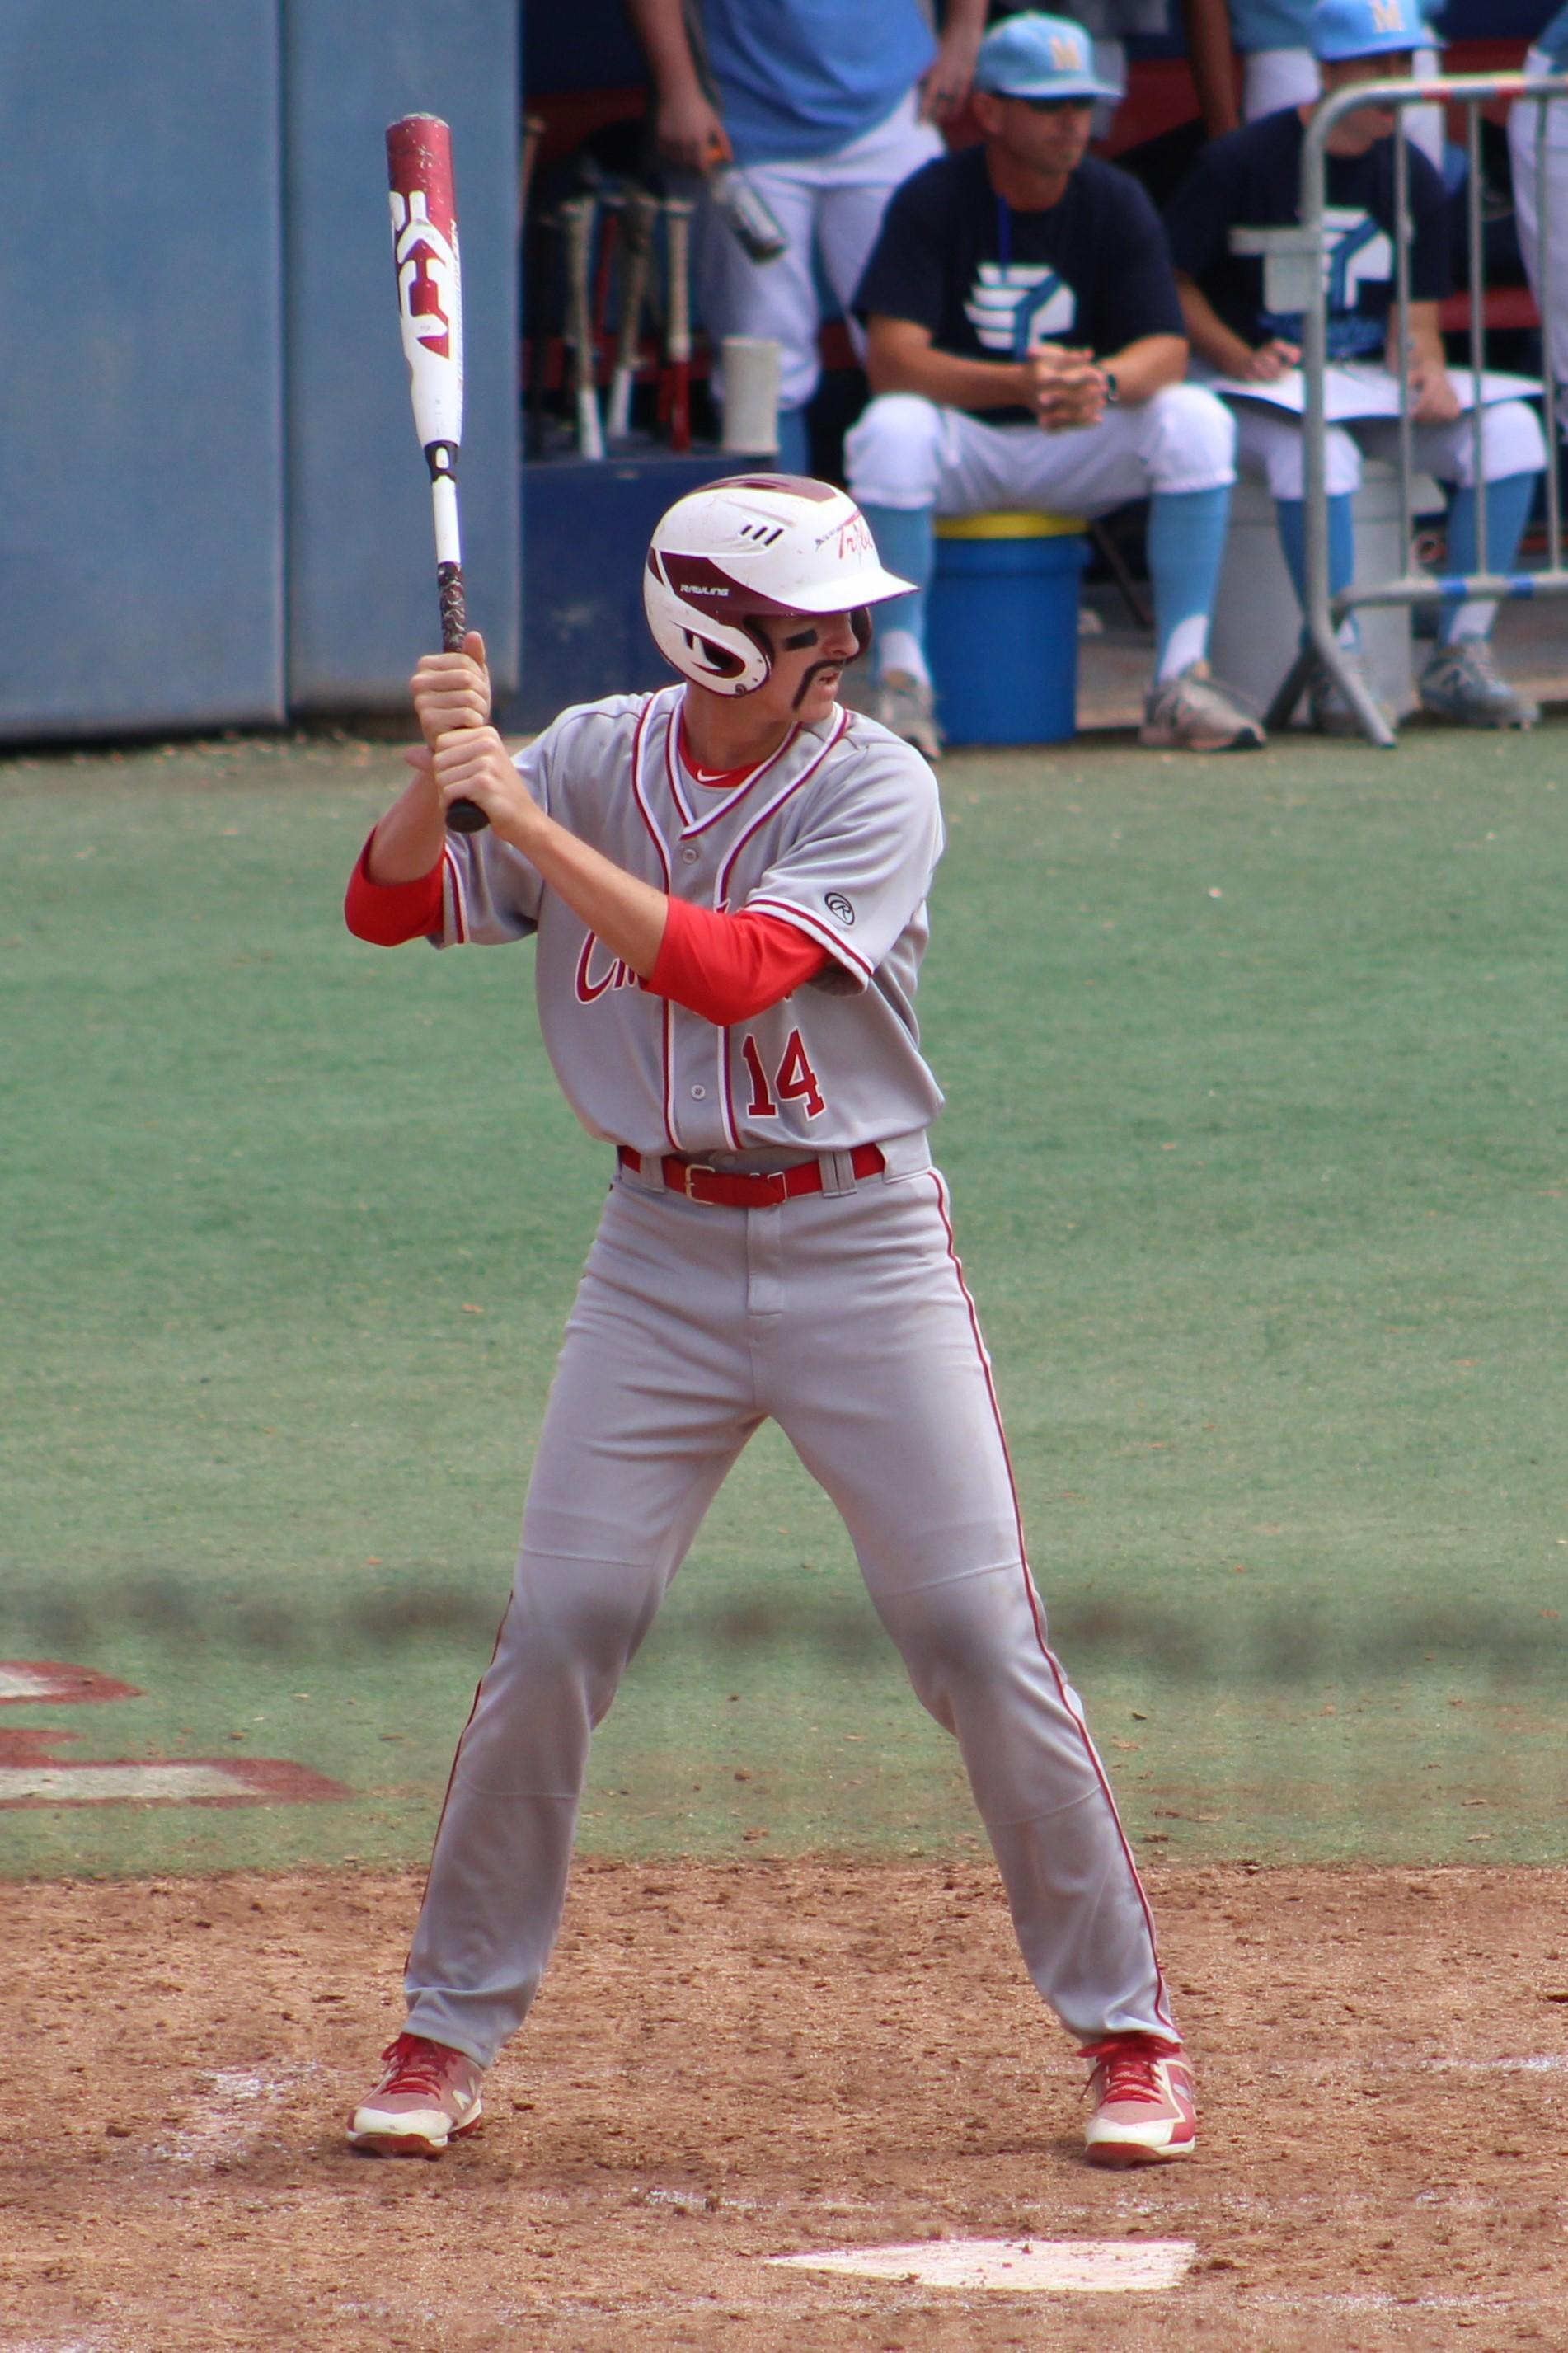 Chowchilla at bat